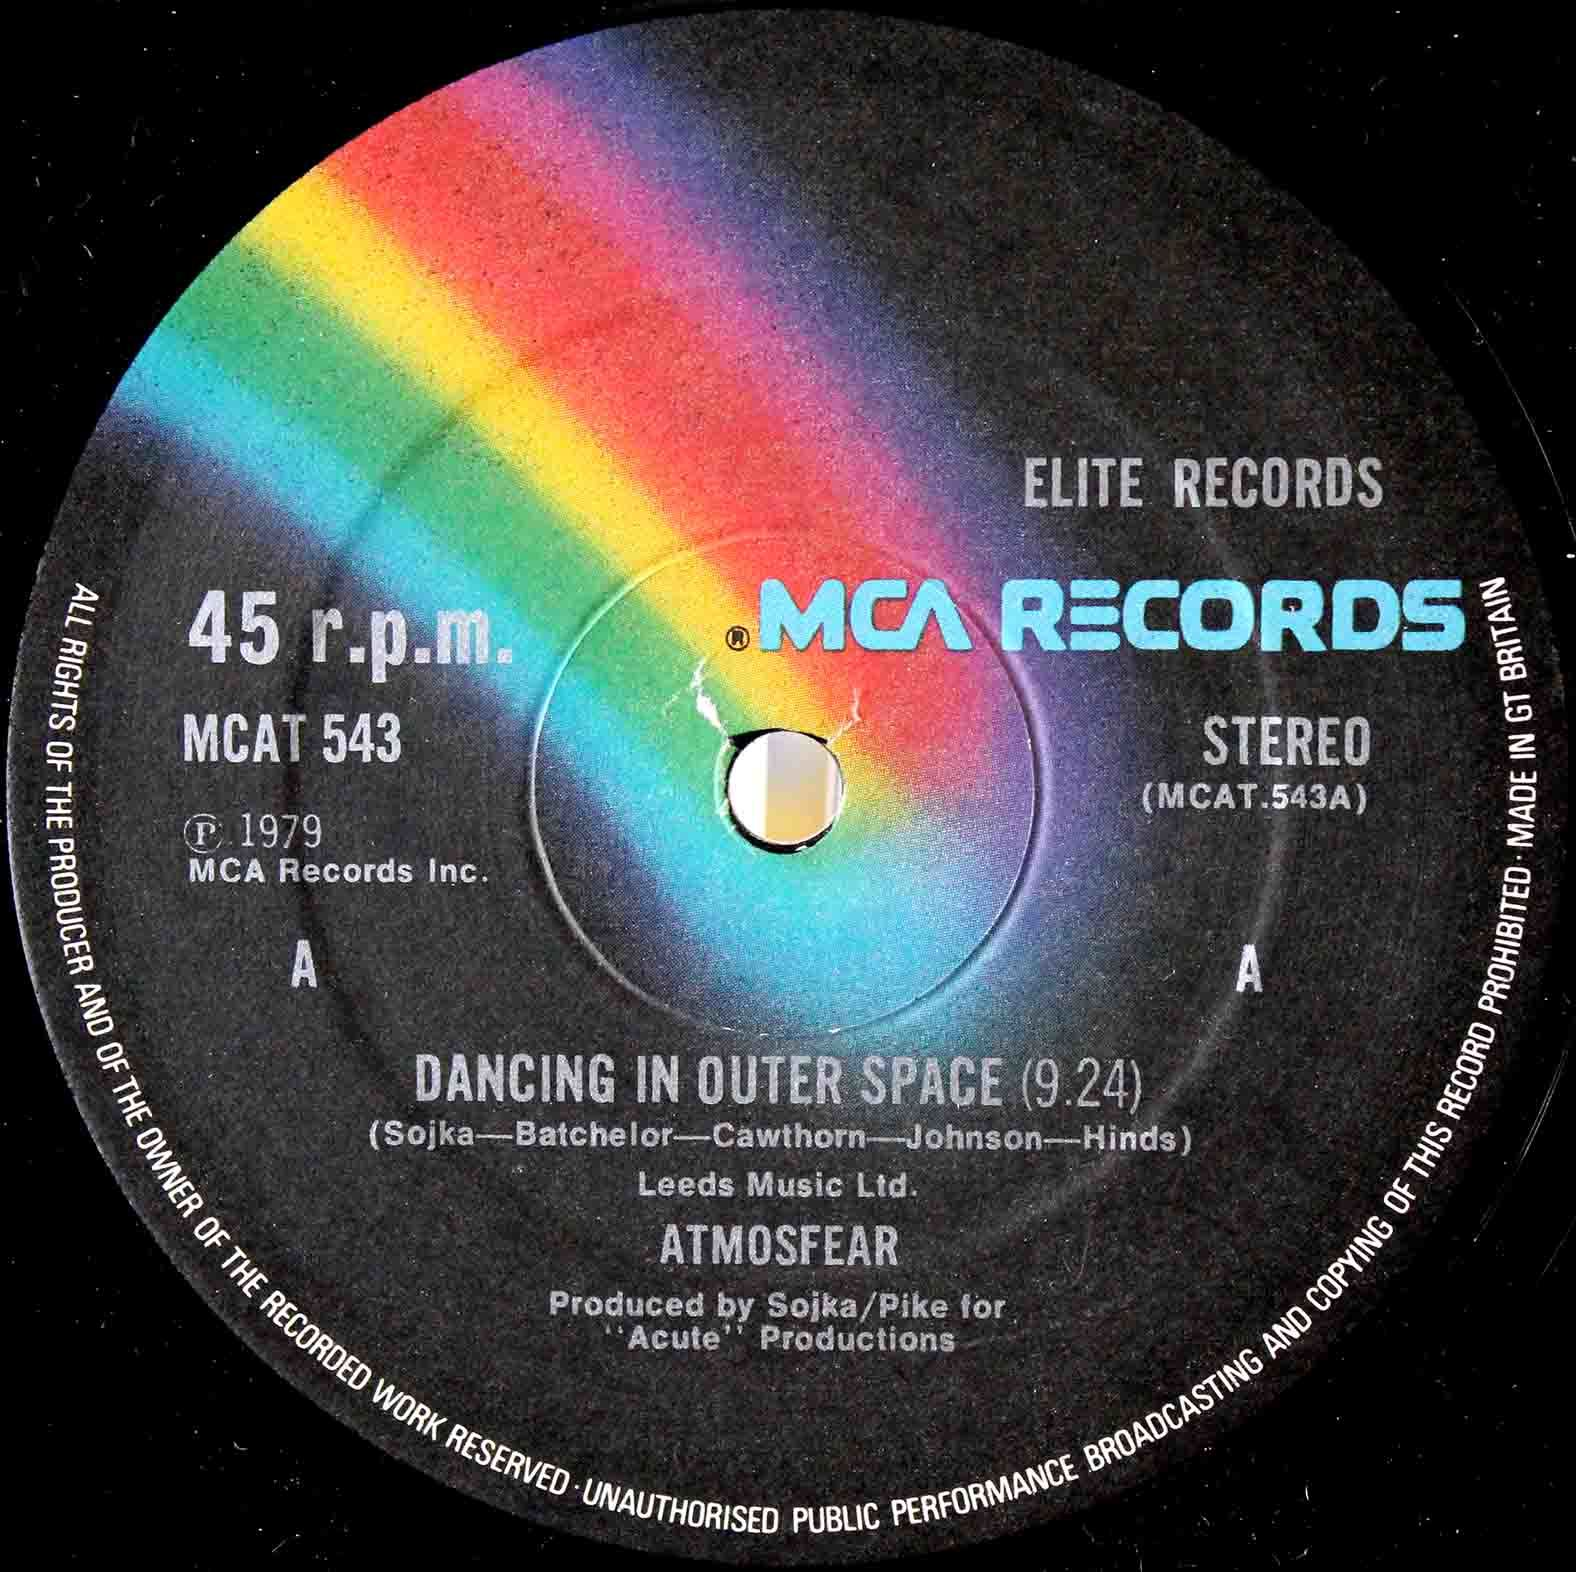 Atmosfear-Dancing In Outer Space 03